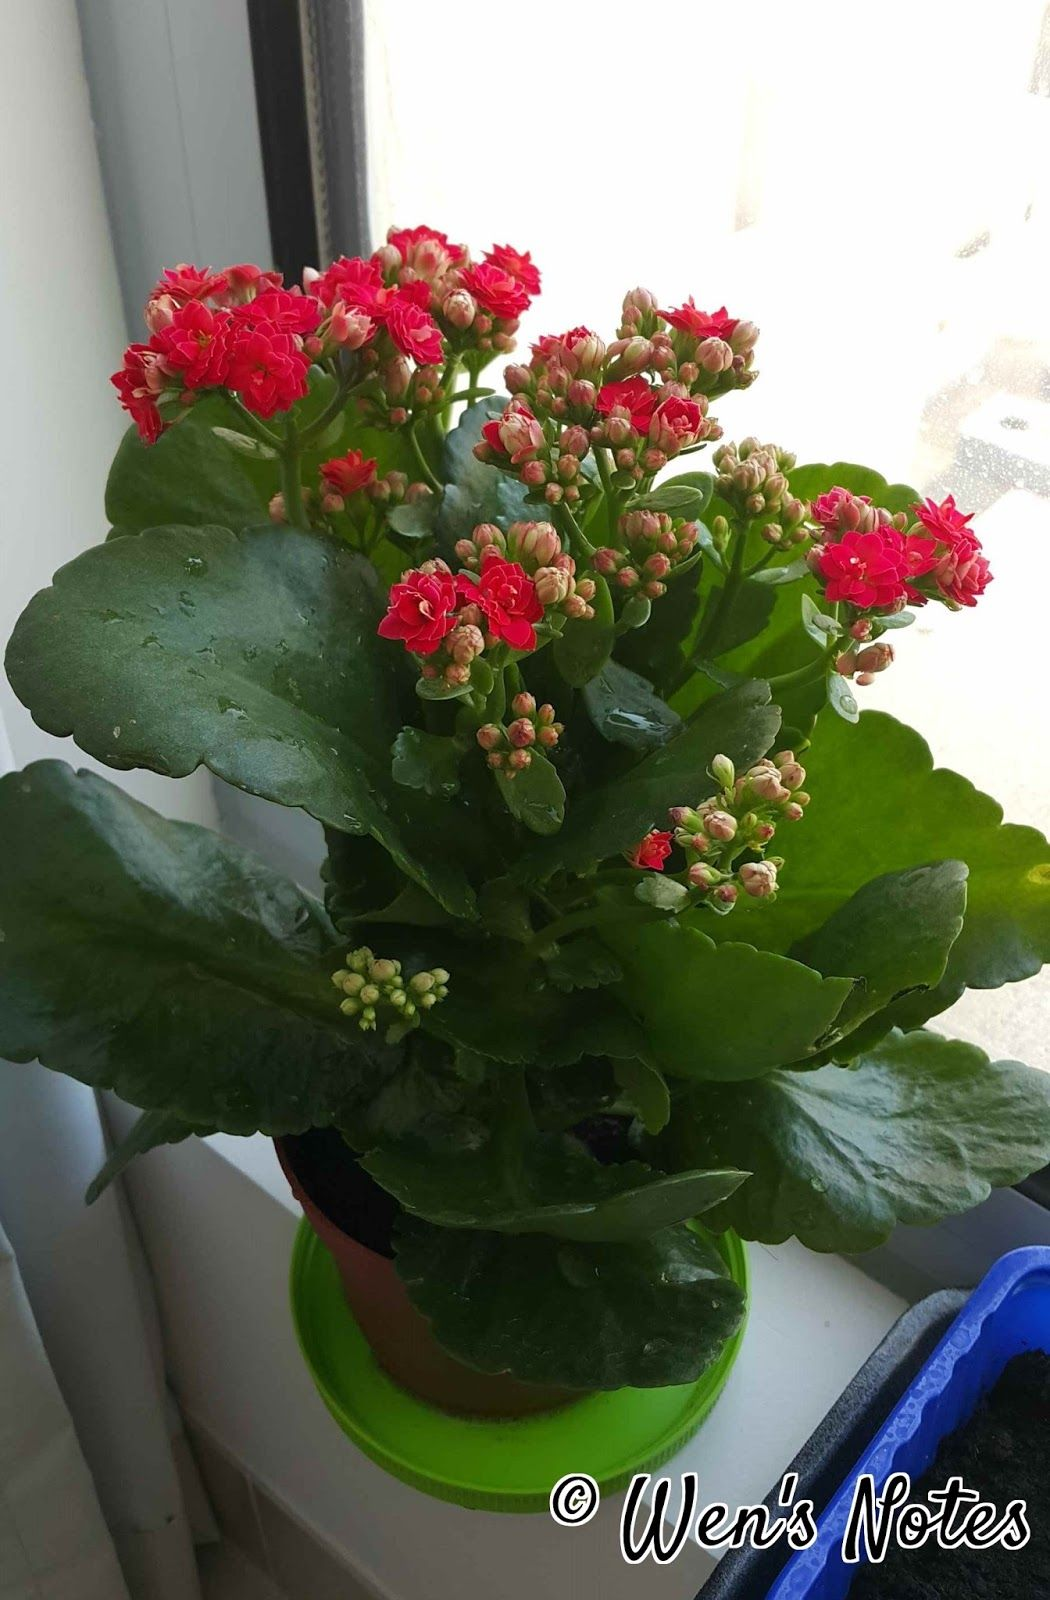 I Bought This Plant From The Supermarket As Its Cheap The Red Little Flower Looks Like Mini Rose When I Look Upon The Plants Inside Plants Kalanchoe Flowers